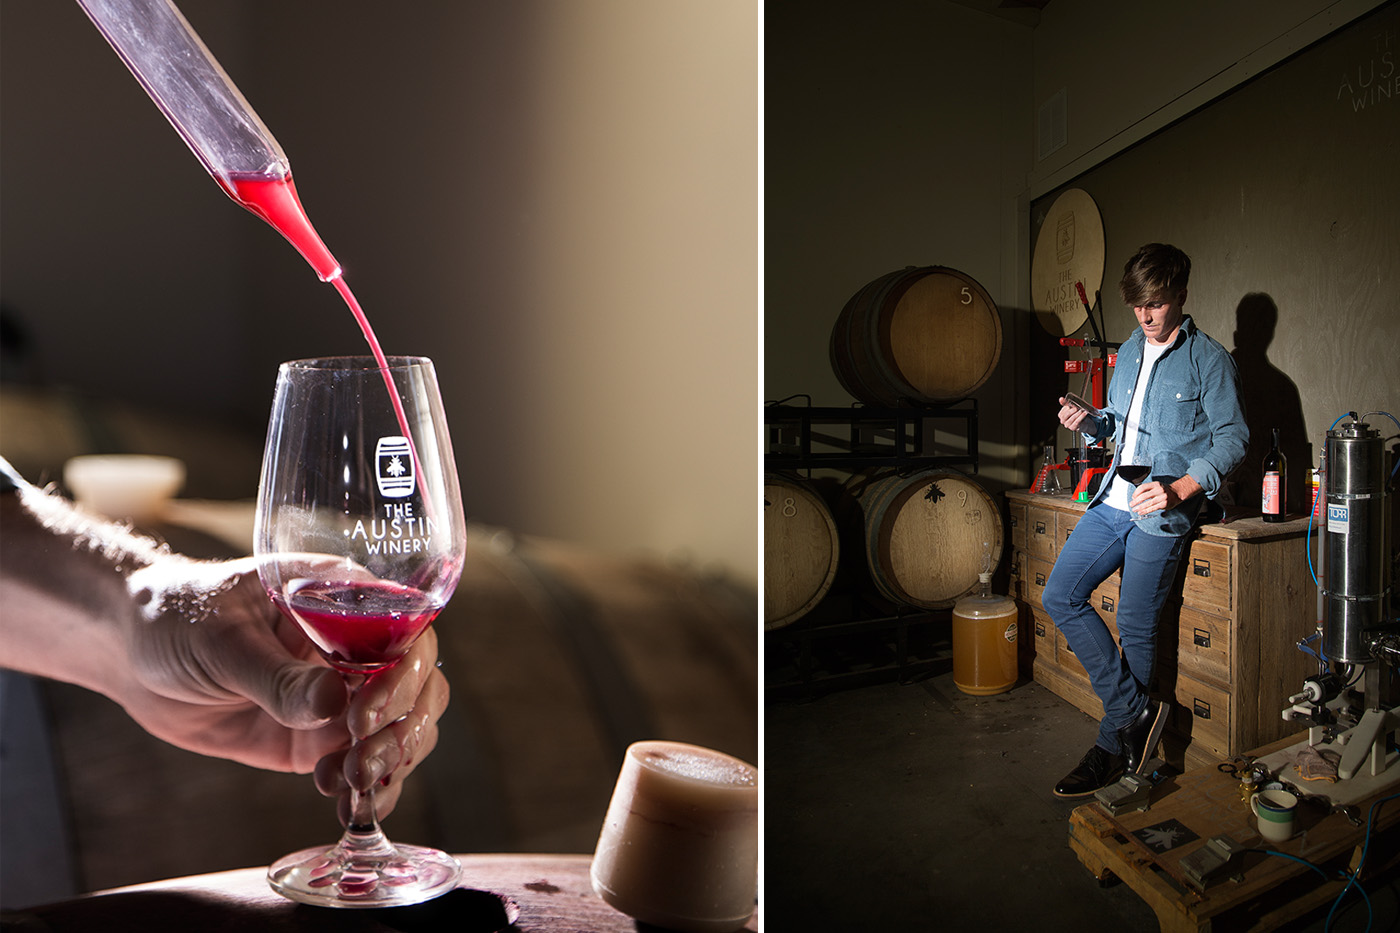 The Austin Whinery owner and CEO Ross Mclauchlan tests aged wine from a barrel